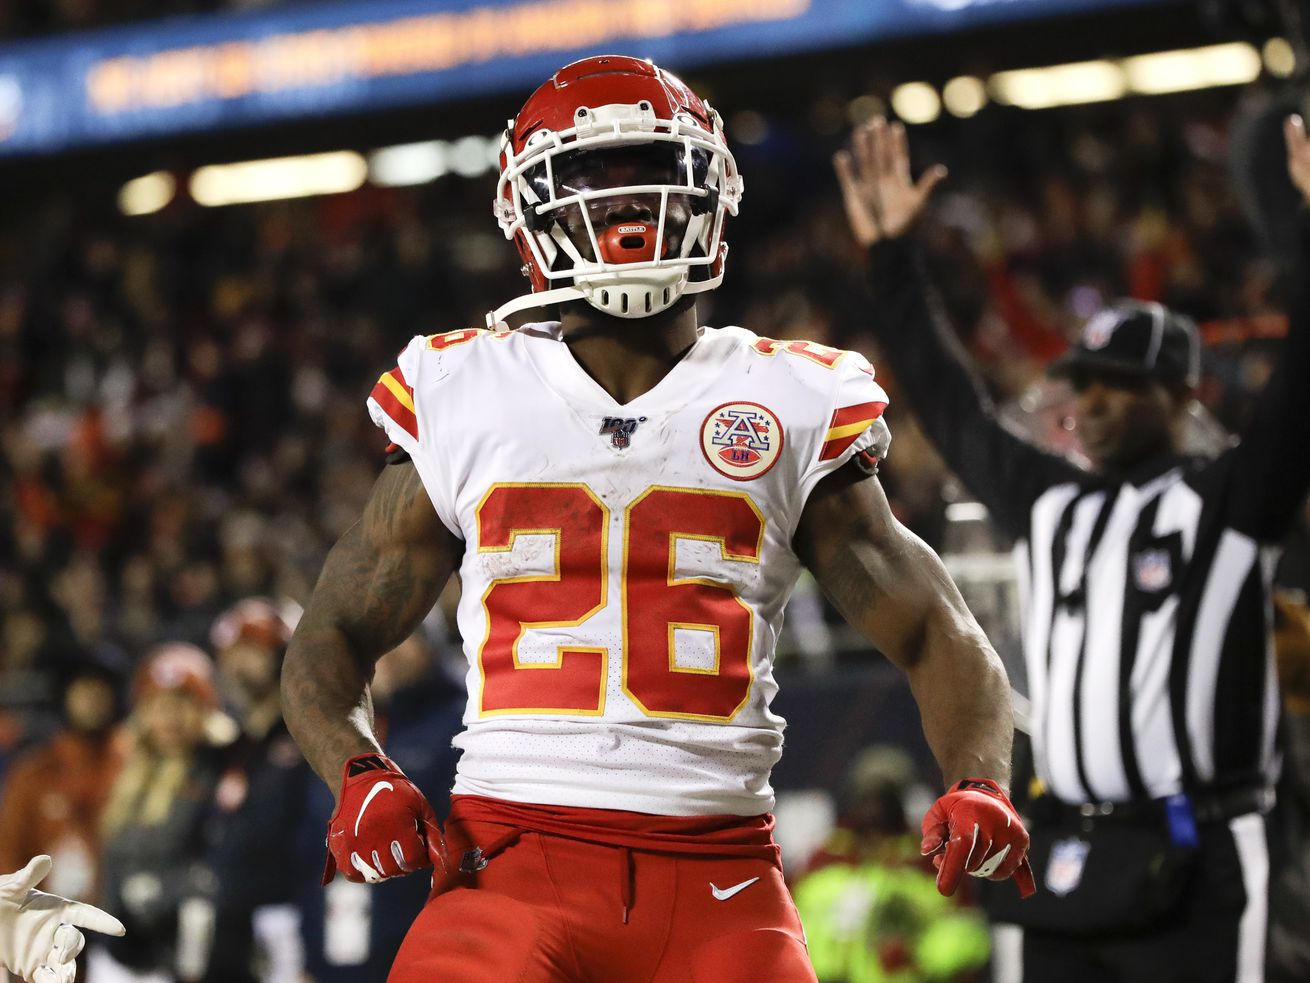 The last time Damien Williams played in a game, he put up 133 yards from scrimmage and scored two touchdowns to help the Chiefs win Super Bowl LIV.